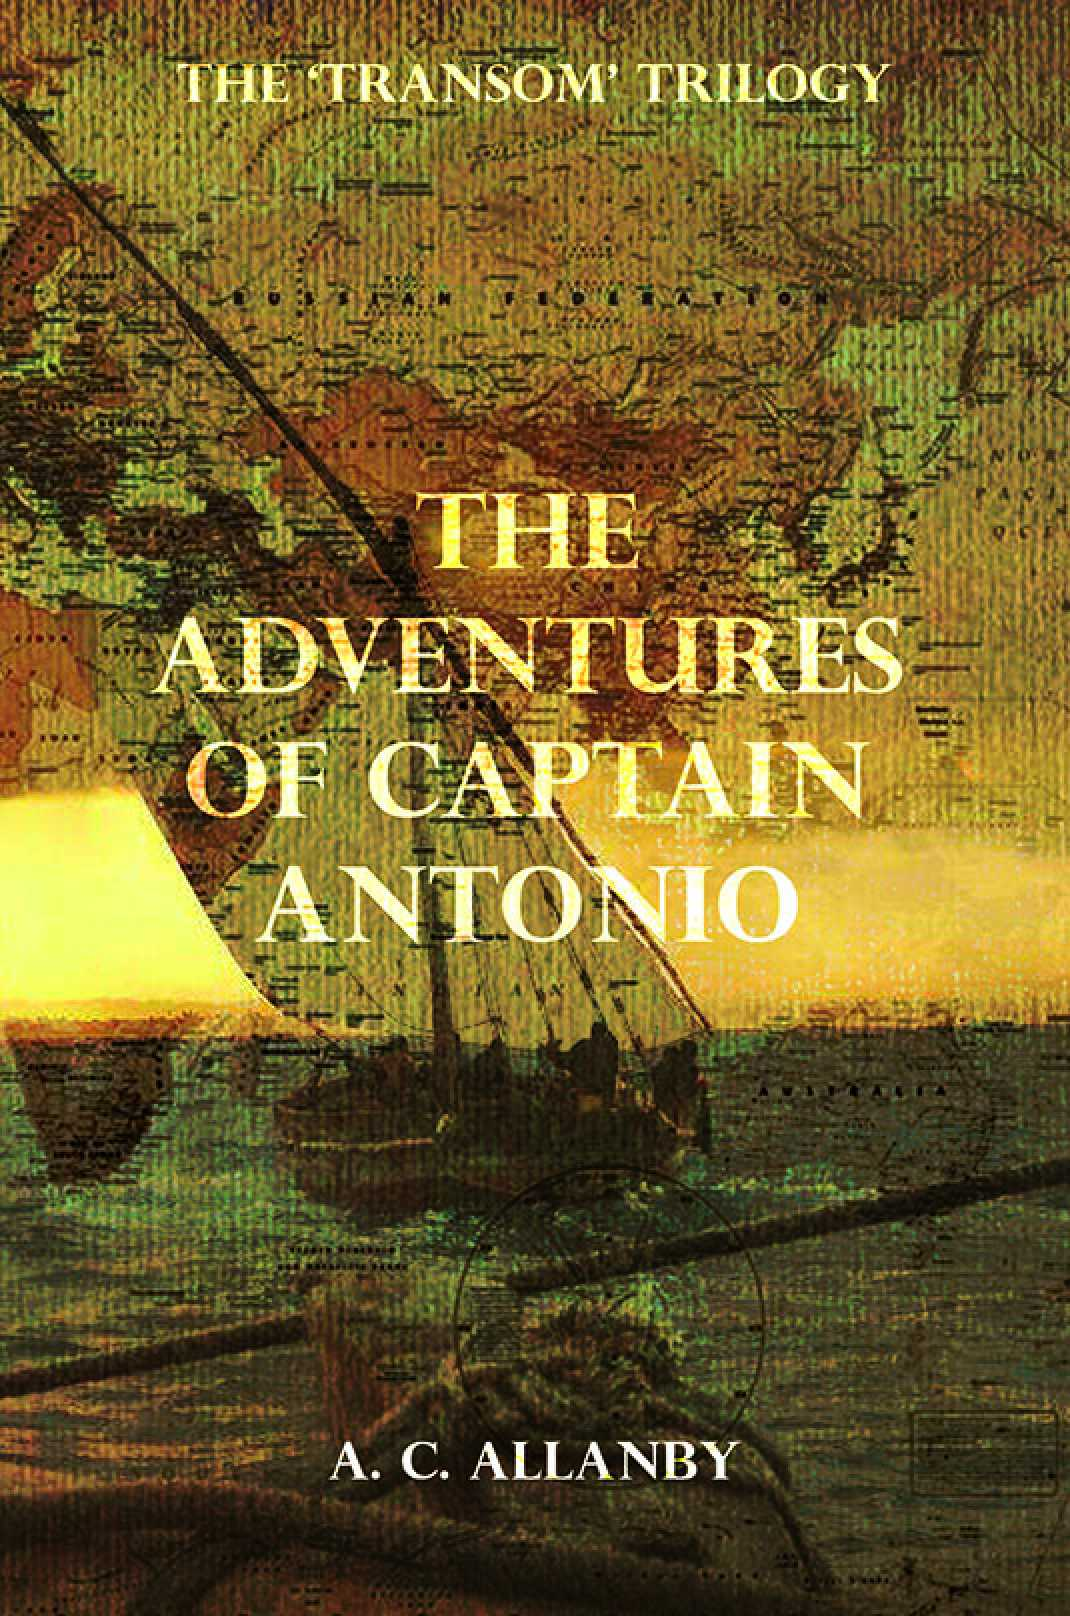 The Transom Trilogy I: The Adventures of Captain Antonio